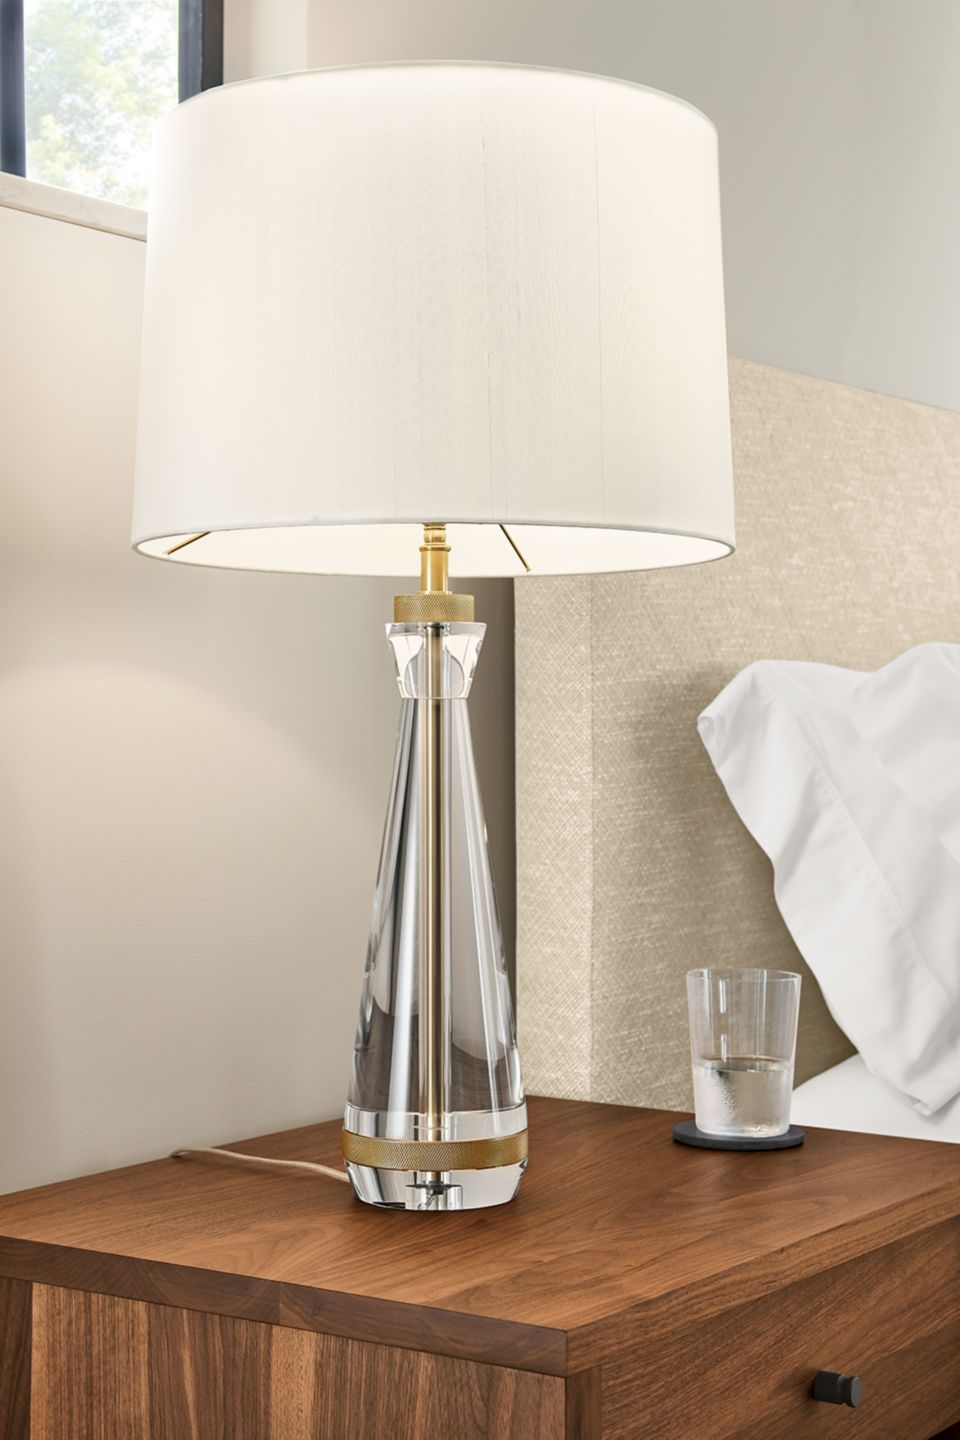 Detail of Gatsby table lamp